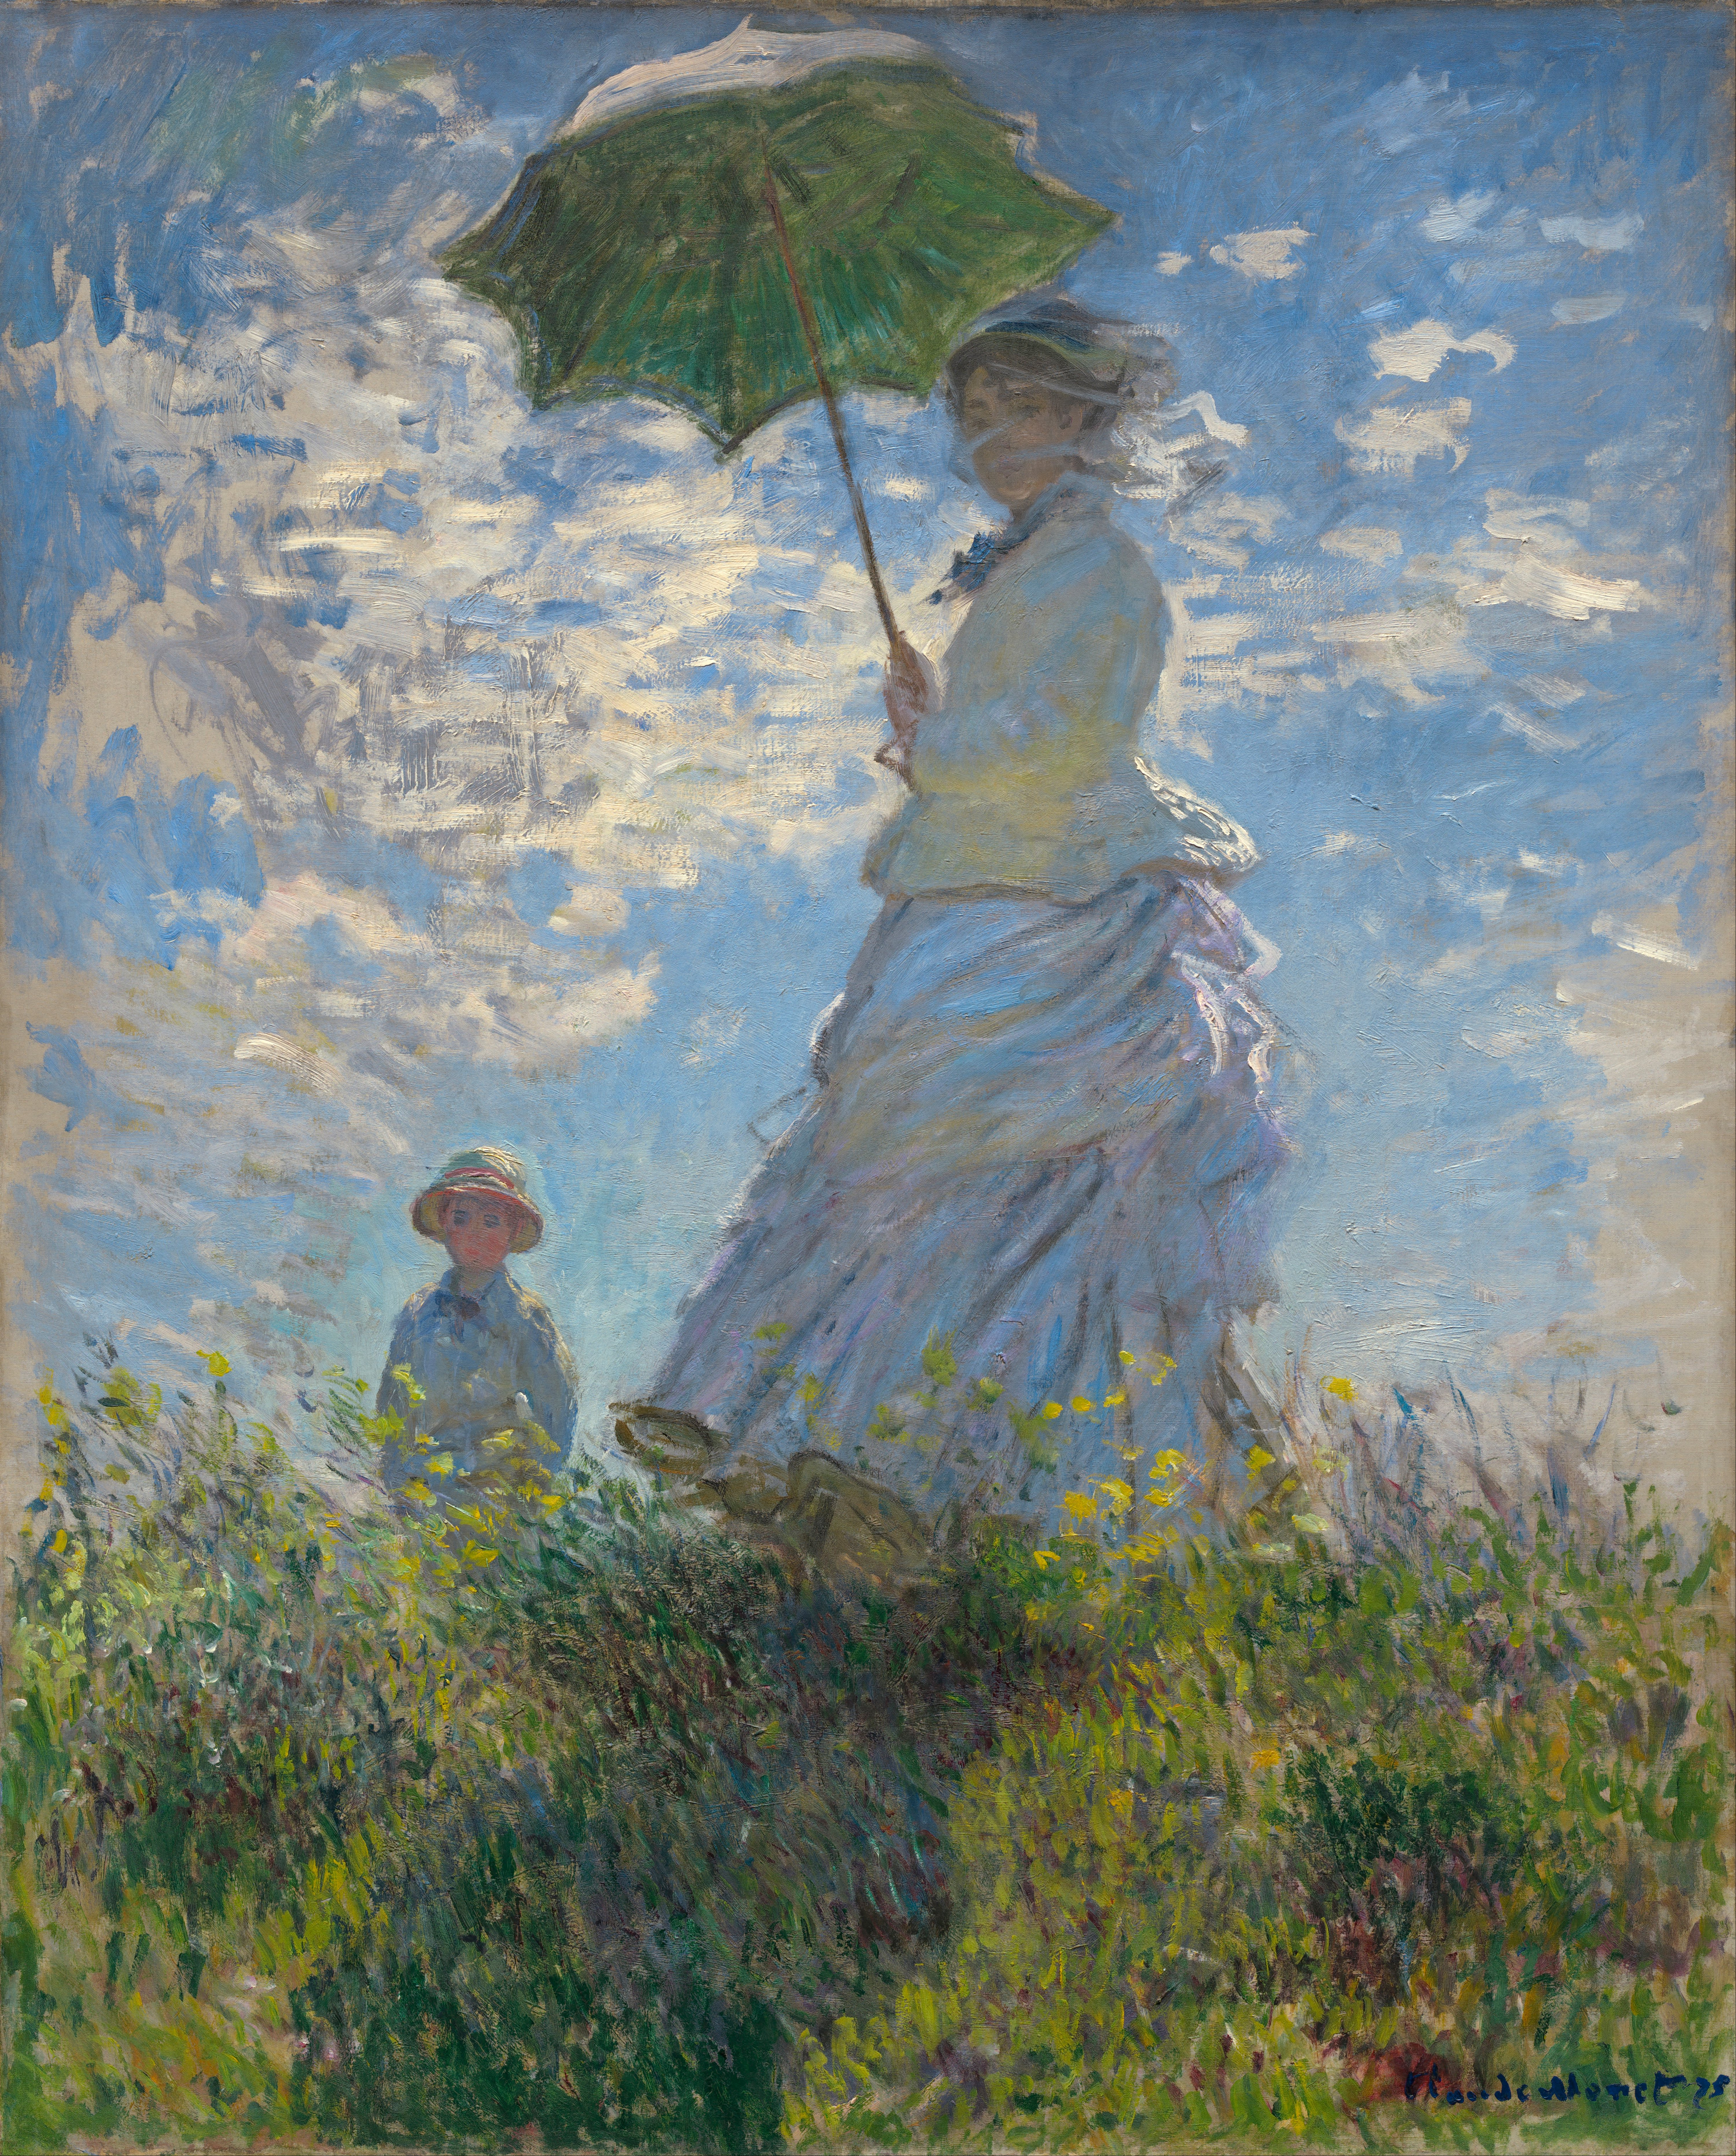 https://upload.wikimedia.org/wikipedia/commons/1/1b/Claude_Monet_-_Woman_with_a_Parasol_-_Madame_Monet_and_Her_Son_-_Google_Art_Project.jpg